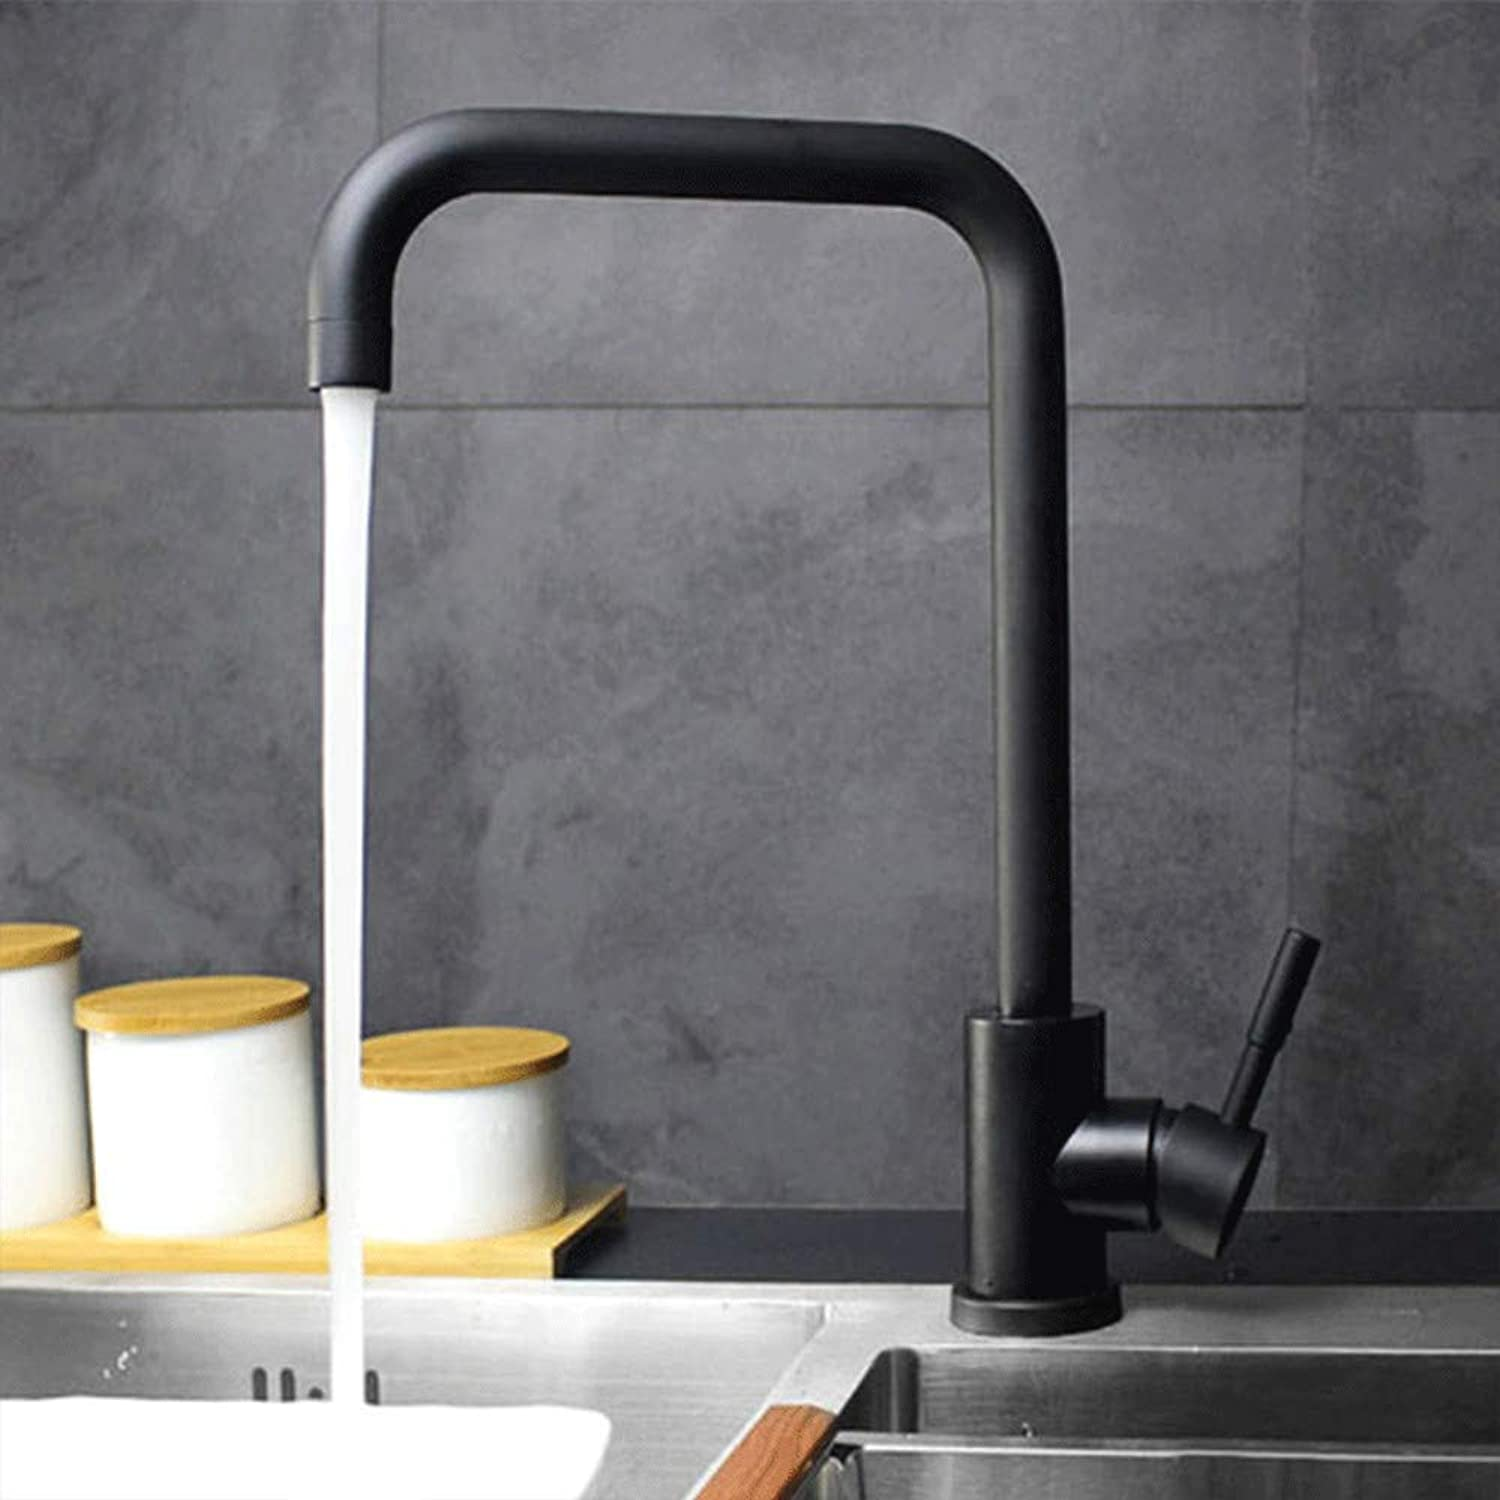 Hot and Cold Kitchen Faucet Stainless Steel Black Paint Sink Faucet Fast Open Big Water Sink Faucet